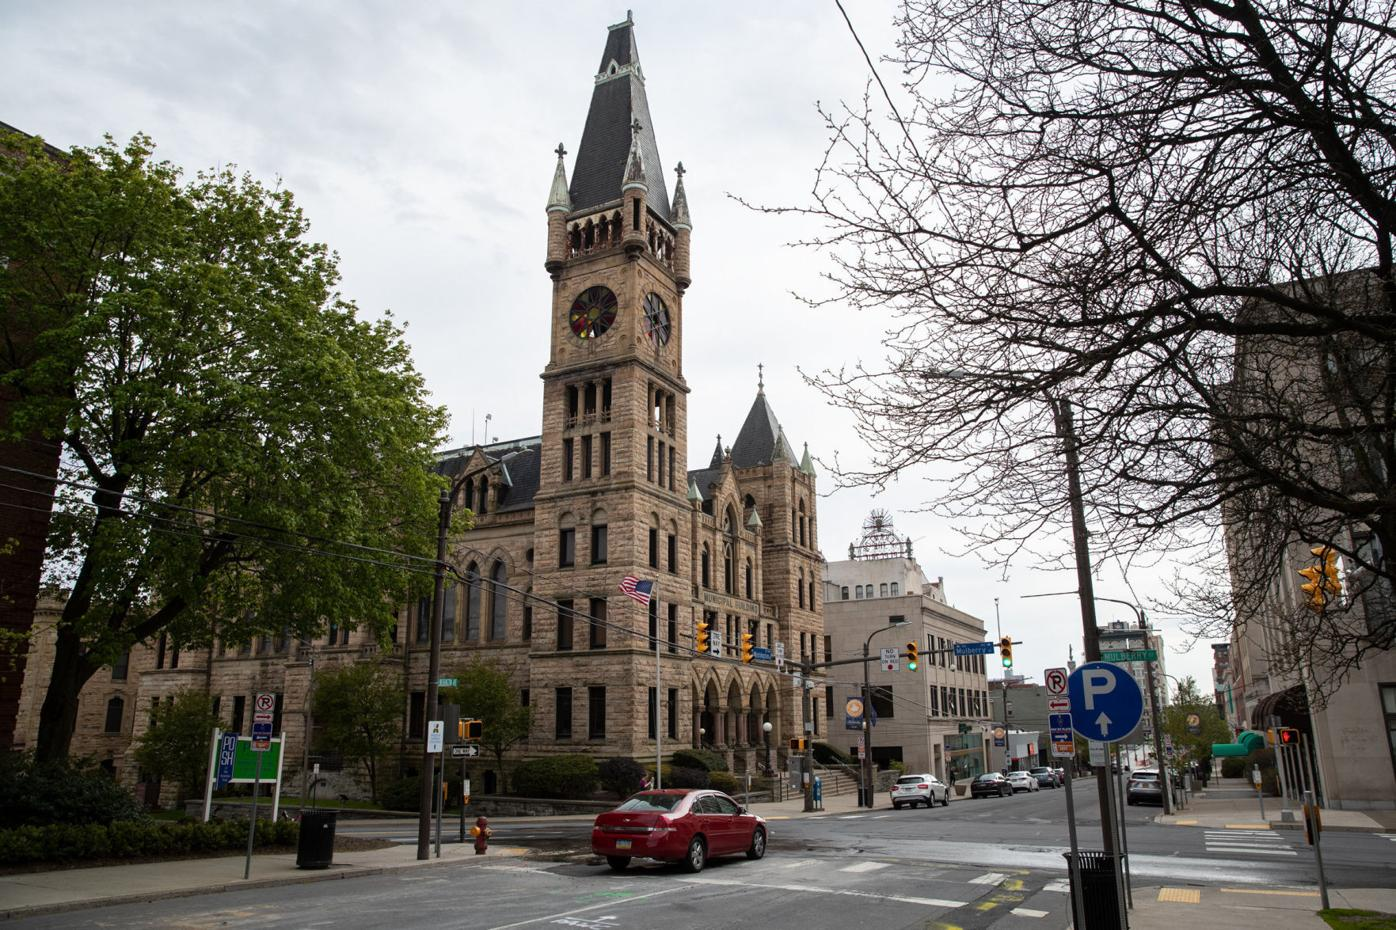 Lawyers argue about legality of Scranton local services tax